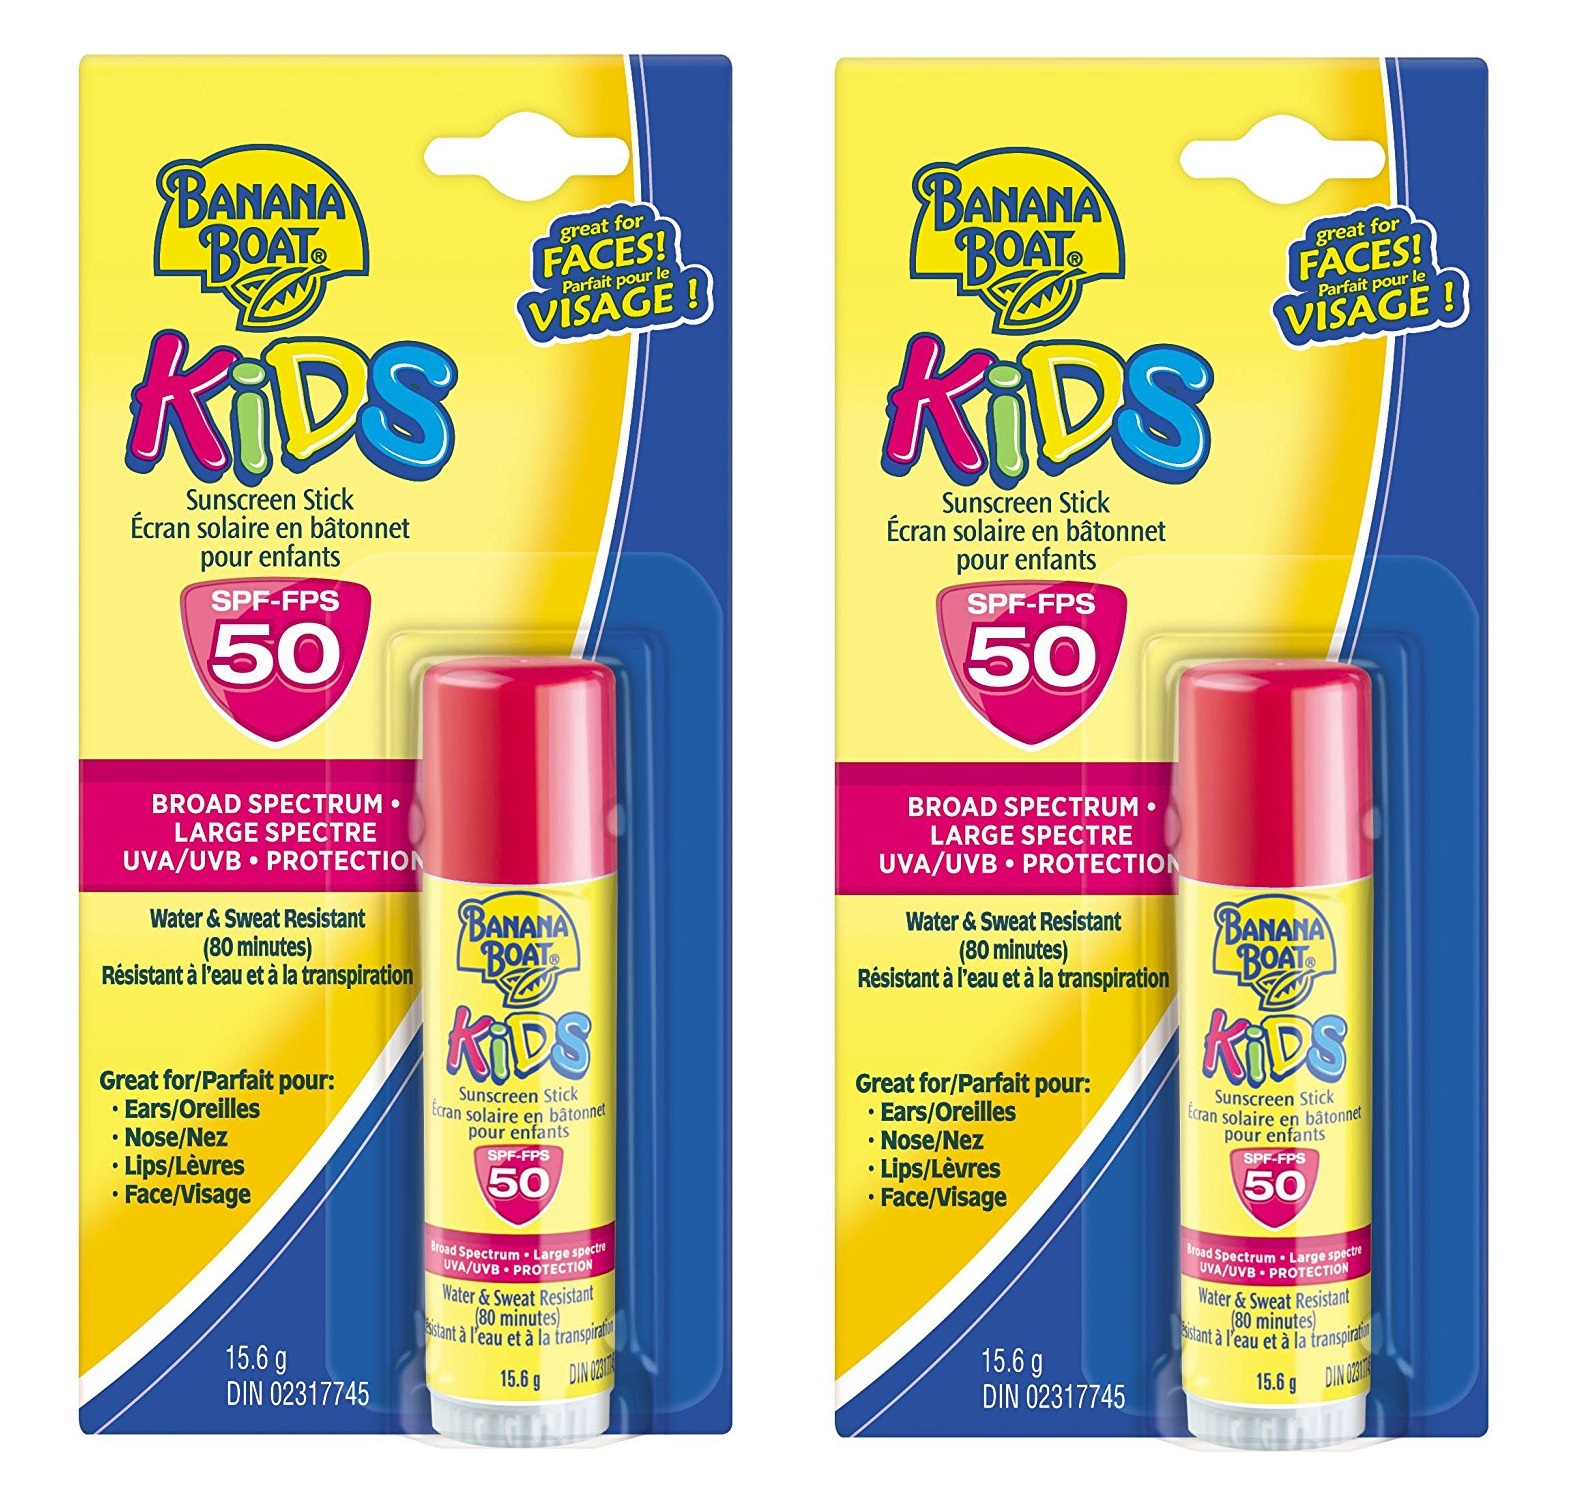 Banana Boat Kids UVA/UVB Protection Sunscreen Stick for Faces, Broad Spectrum SPF 50, 0.55 Oz (Pack of 2)